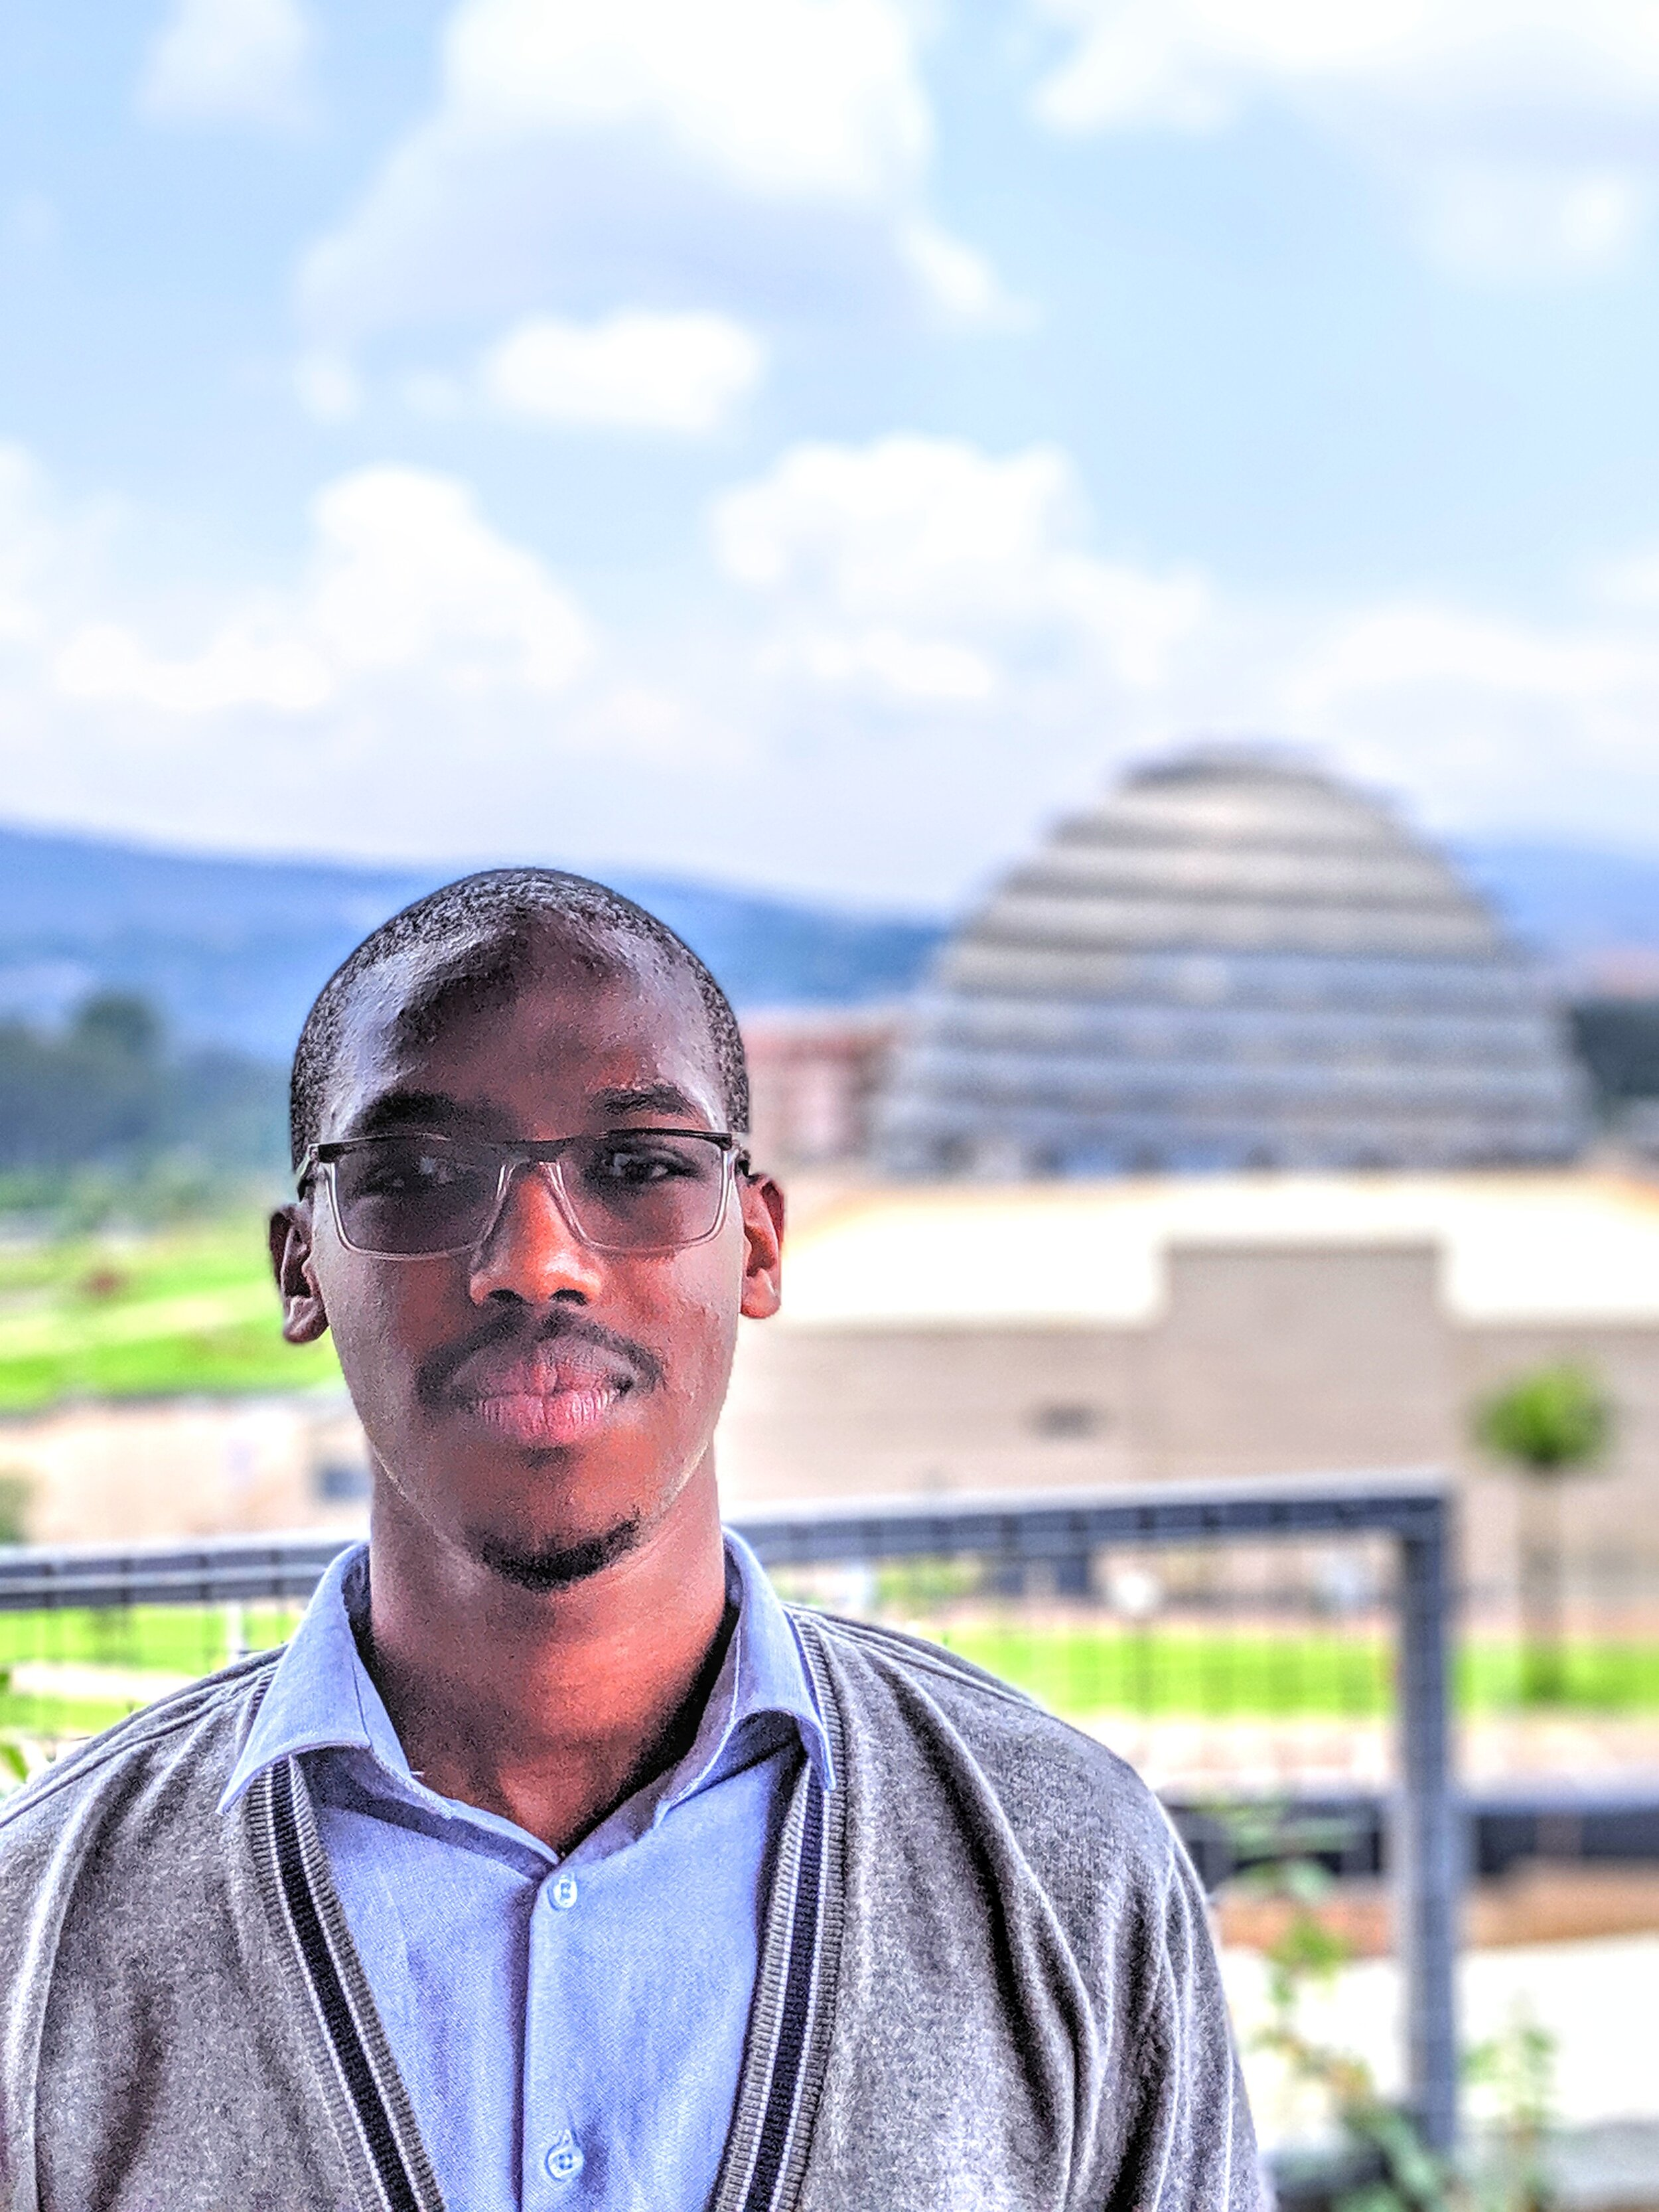 Inyambo MwizerwaInyambo is our intern. He spends 80% per cent of his time in the Accounting dept the rest in basic general office administration support. He is really brilliant, enthusiastic, open minded and target-oriented. He is currently an ACCA student. -